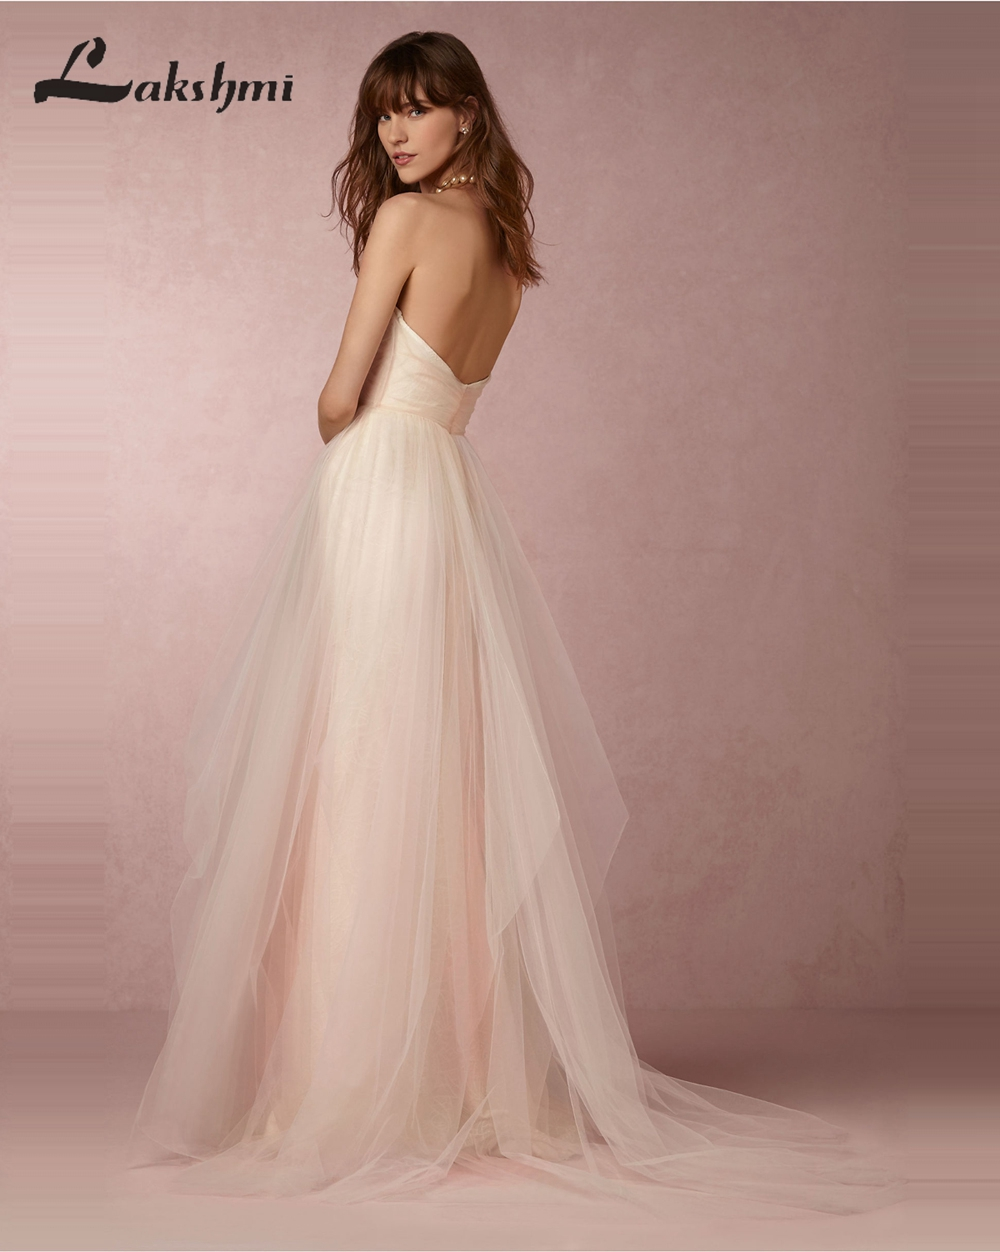 Aliexpress.com : Buy Chic Strapless Low Back Blush Wedding Dresses A ...